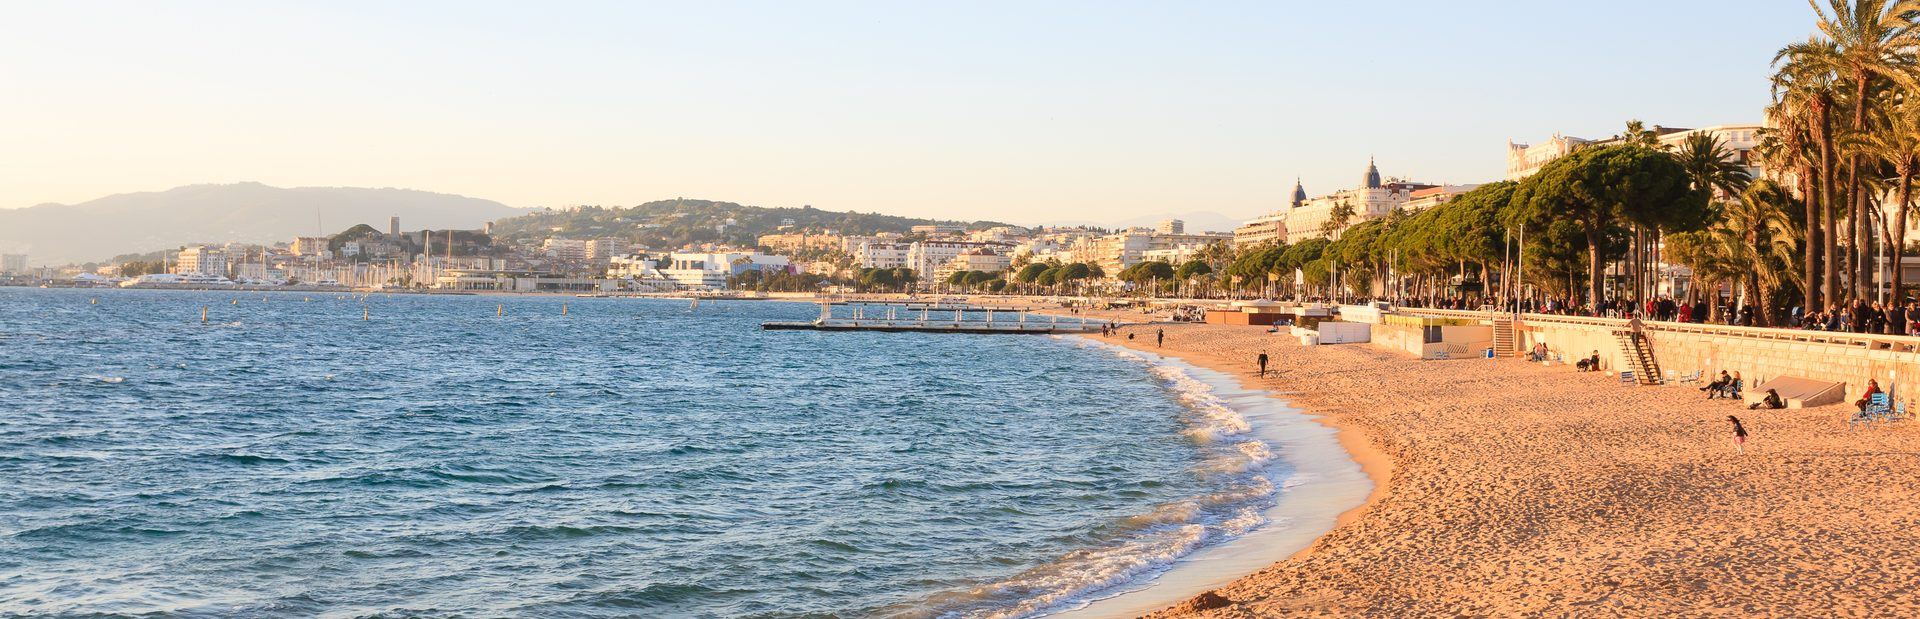 Things to see & do inCannes